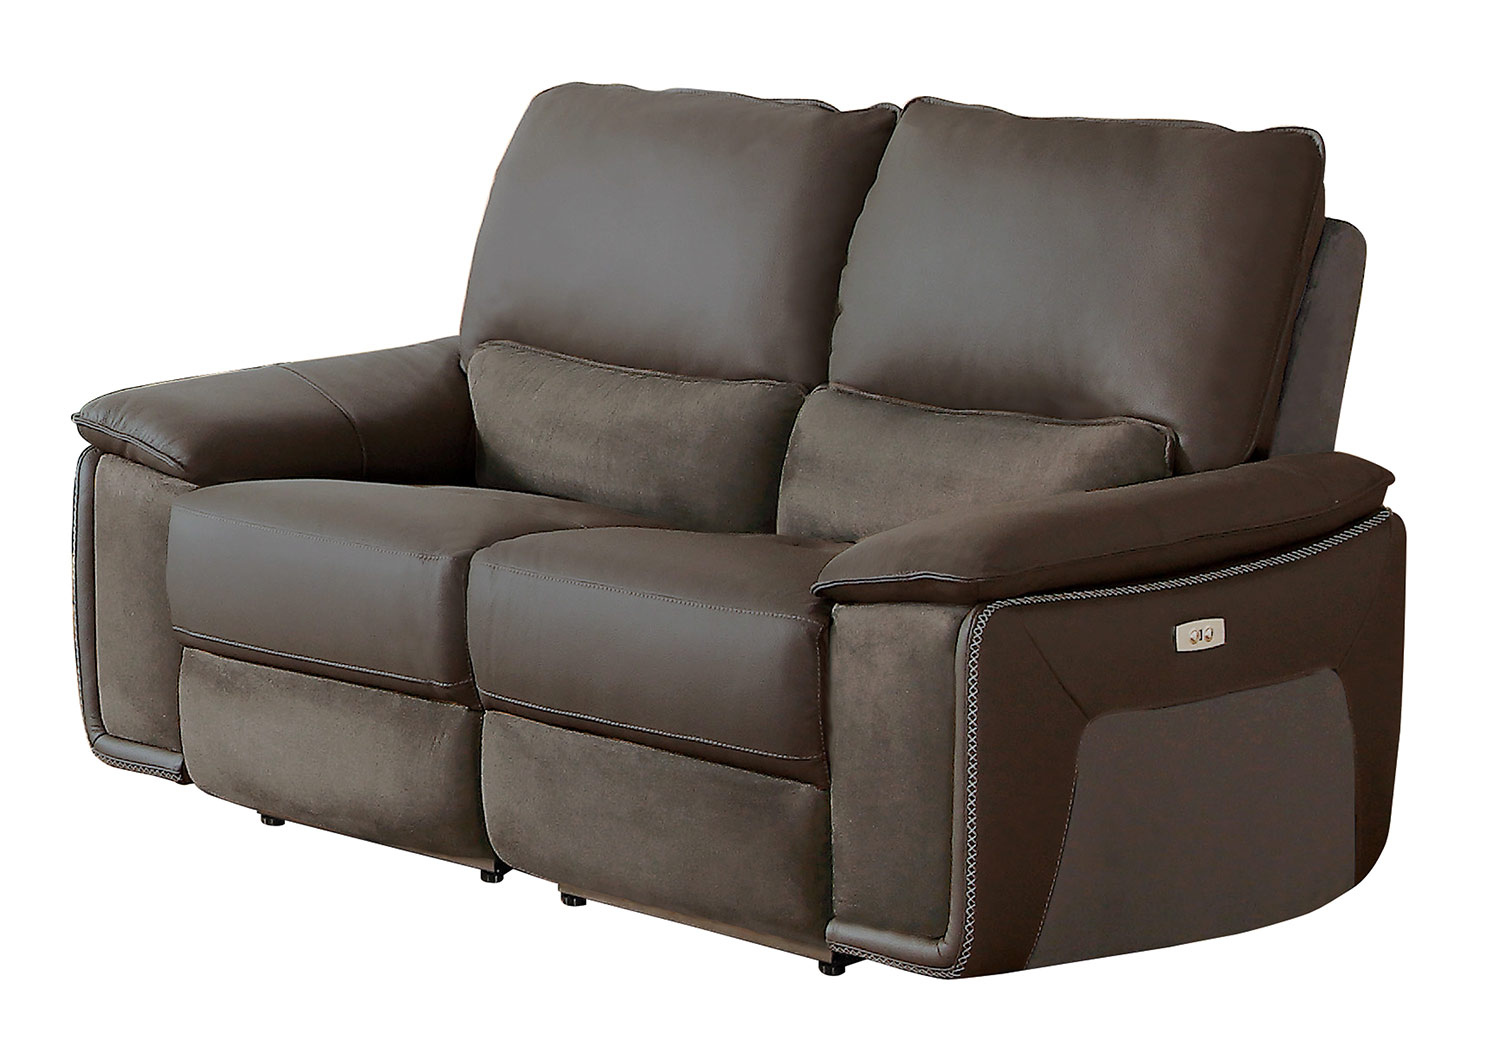 Homelegance Corazon Power Double Reclining Love Seat - Navy Gray Top Grain Leather/Fabric